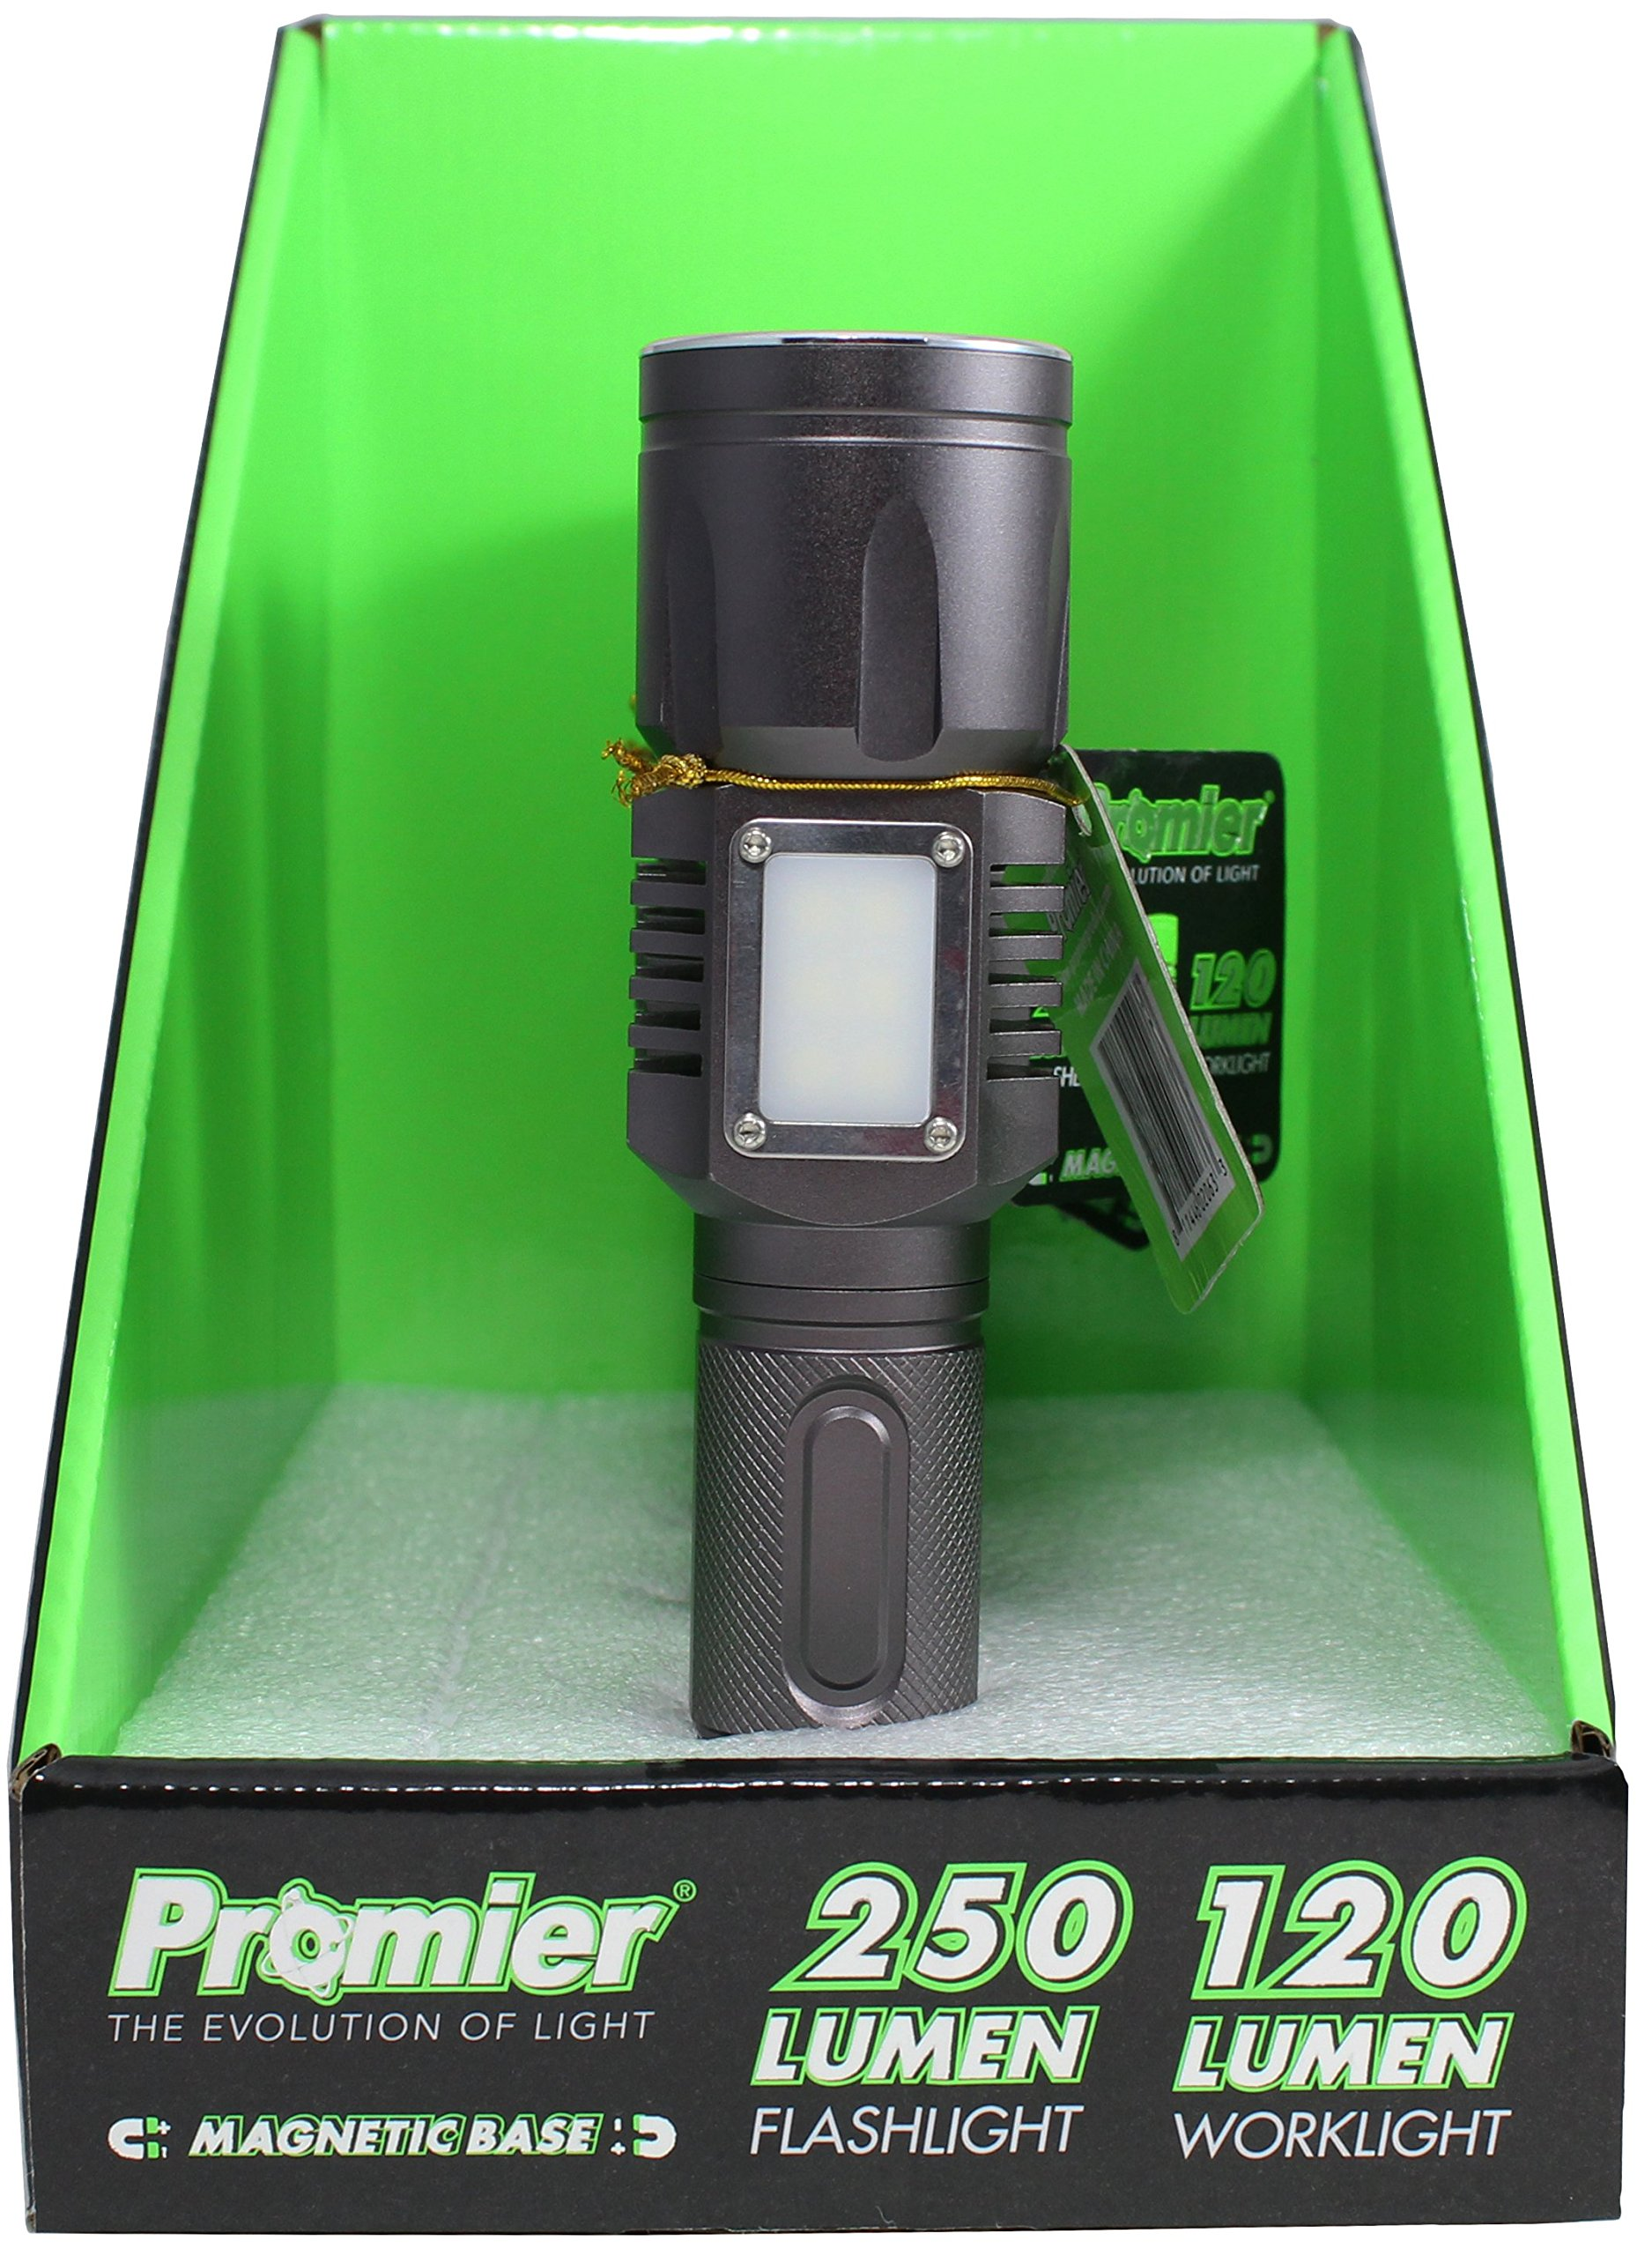 250 Lumen Bright LED Tactical Flashlight & 120 Lumen Lantern Work Light Combo